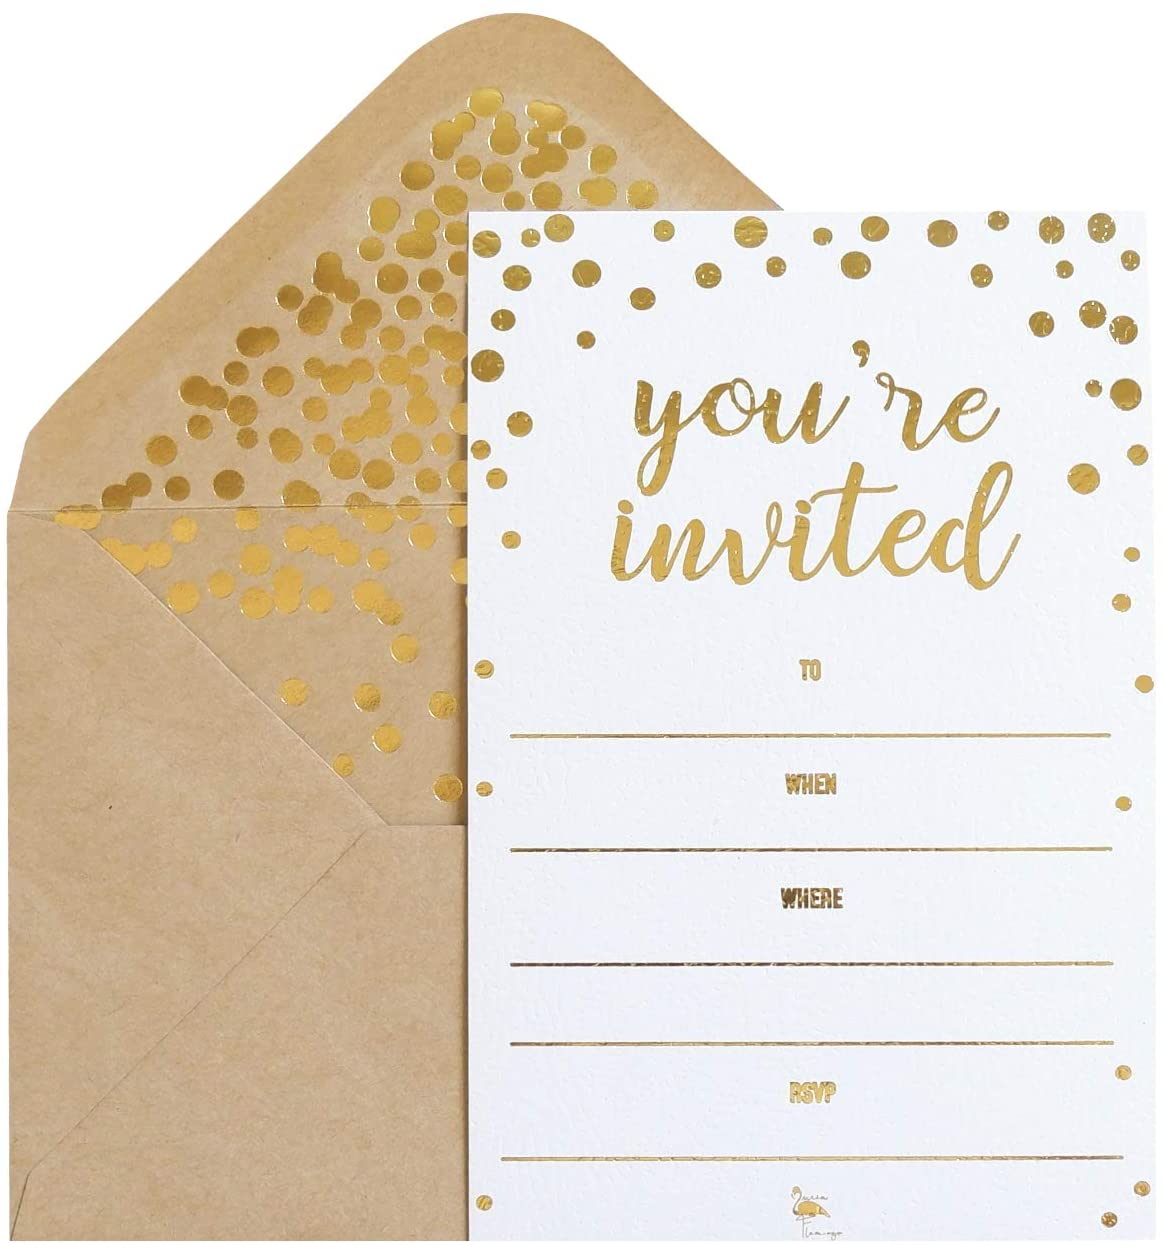 Amazon.com: 50 Pack Invitation Card - Elegant Greeting Cards ''You are  Invited'' in Gold Foil Letters – for Wedding, Bridal Shower, Baby Shower, Birthday  Invitations - 52 Kraft Envelopes Included - 4